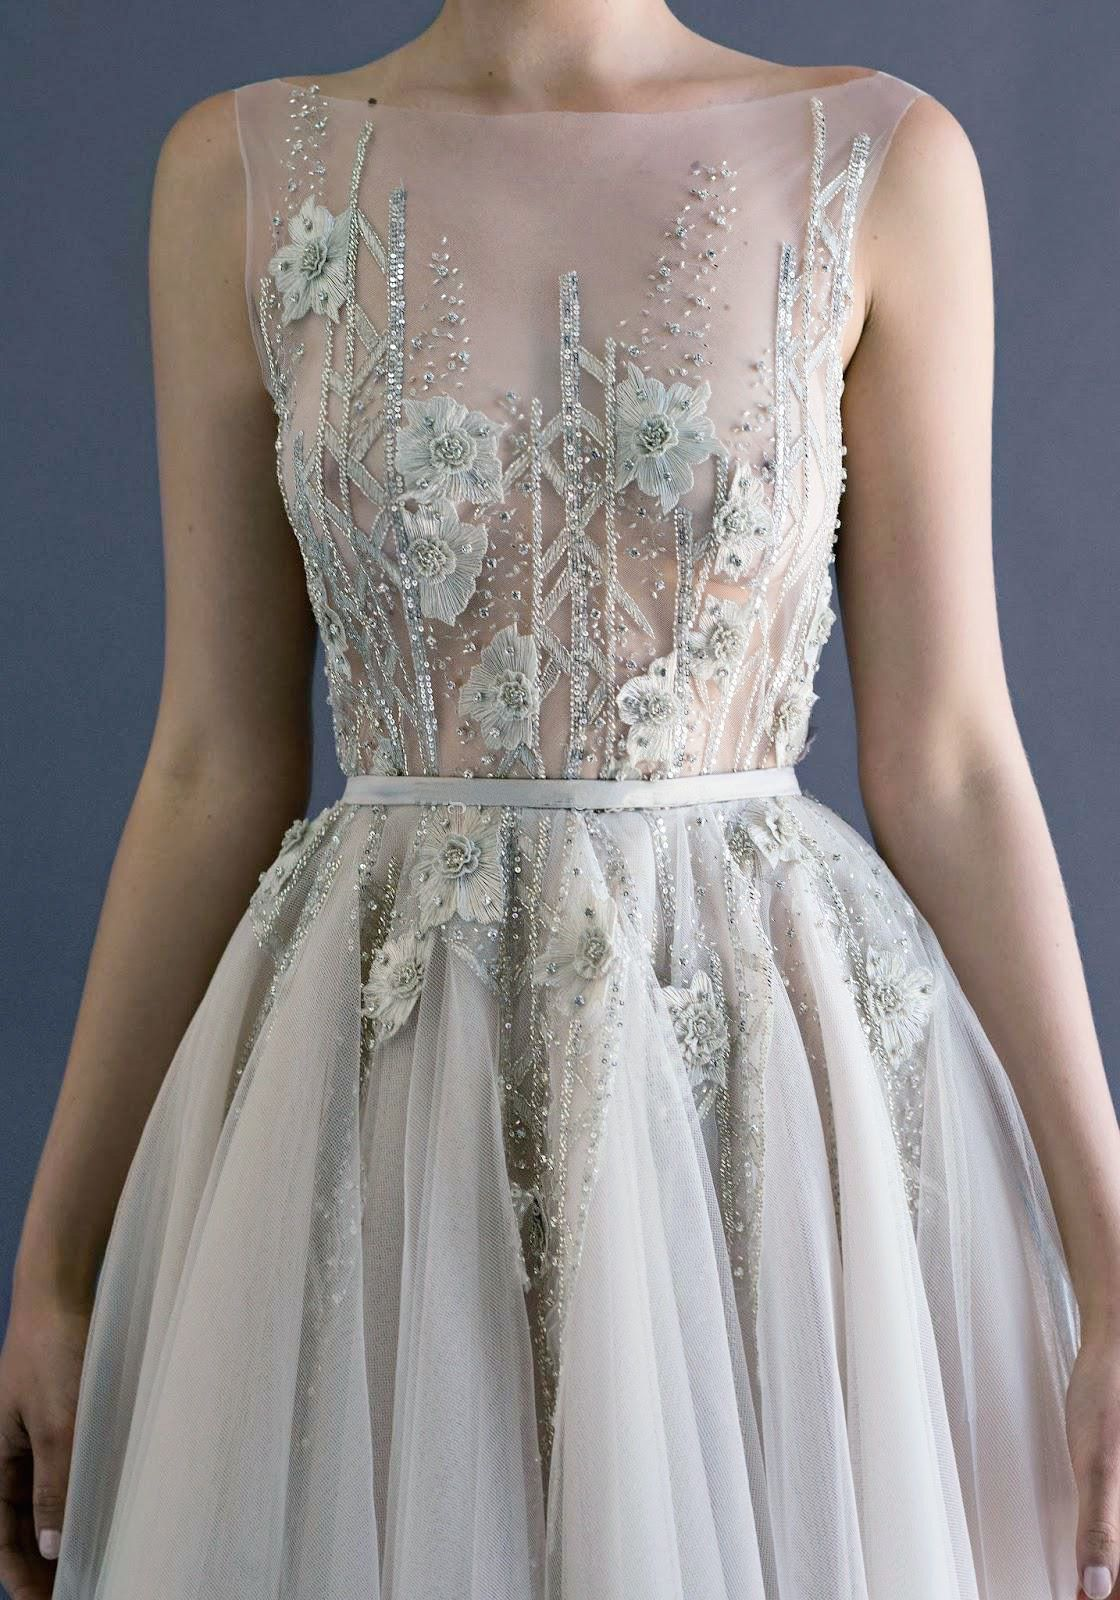 Pin by refinebystyle on gowns formal pinterest formal and gowns